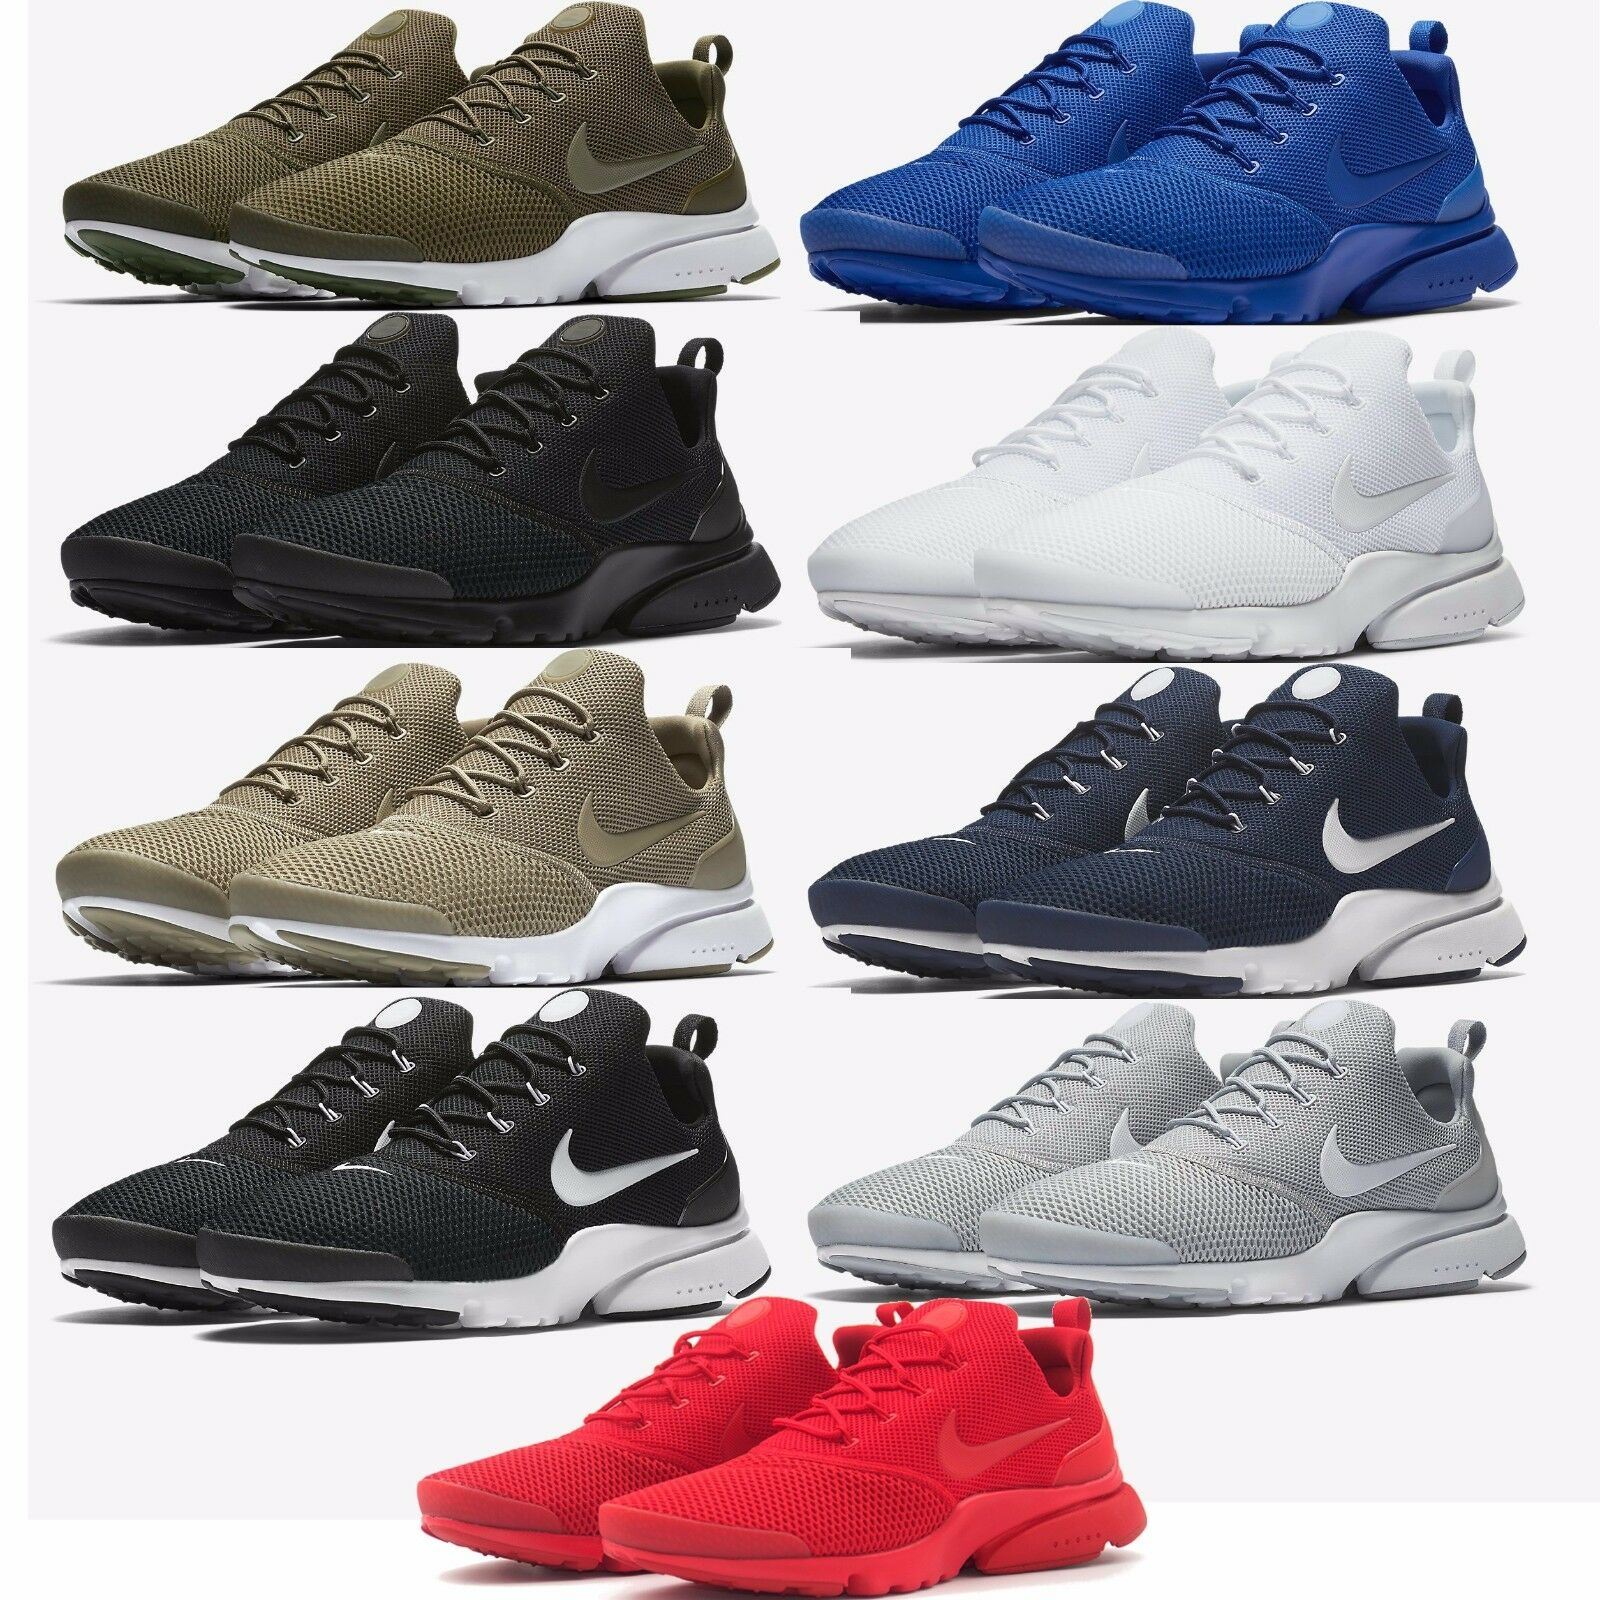 NIKE PRESTO FLY homme fonctionnement fonctionnement fonctionnement LIGHTWEIGHT chaussures COMFY LIFESTYLE Baskets f4ce37